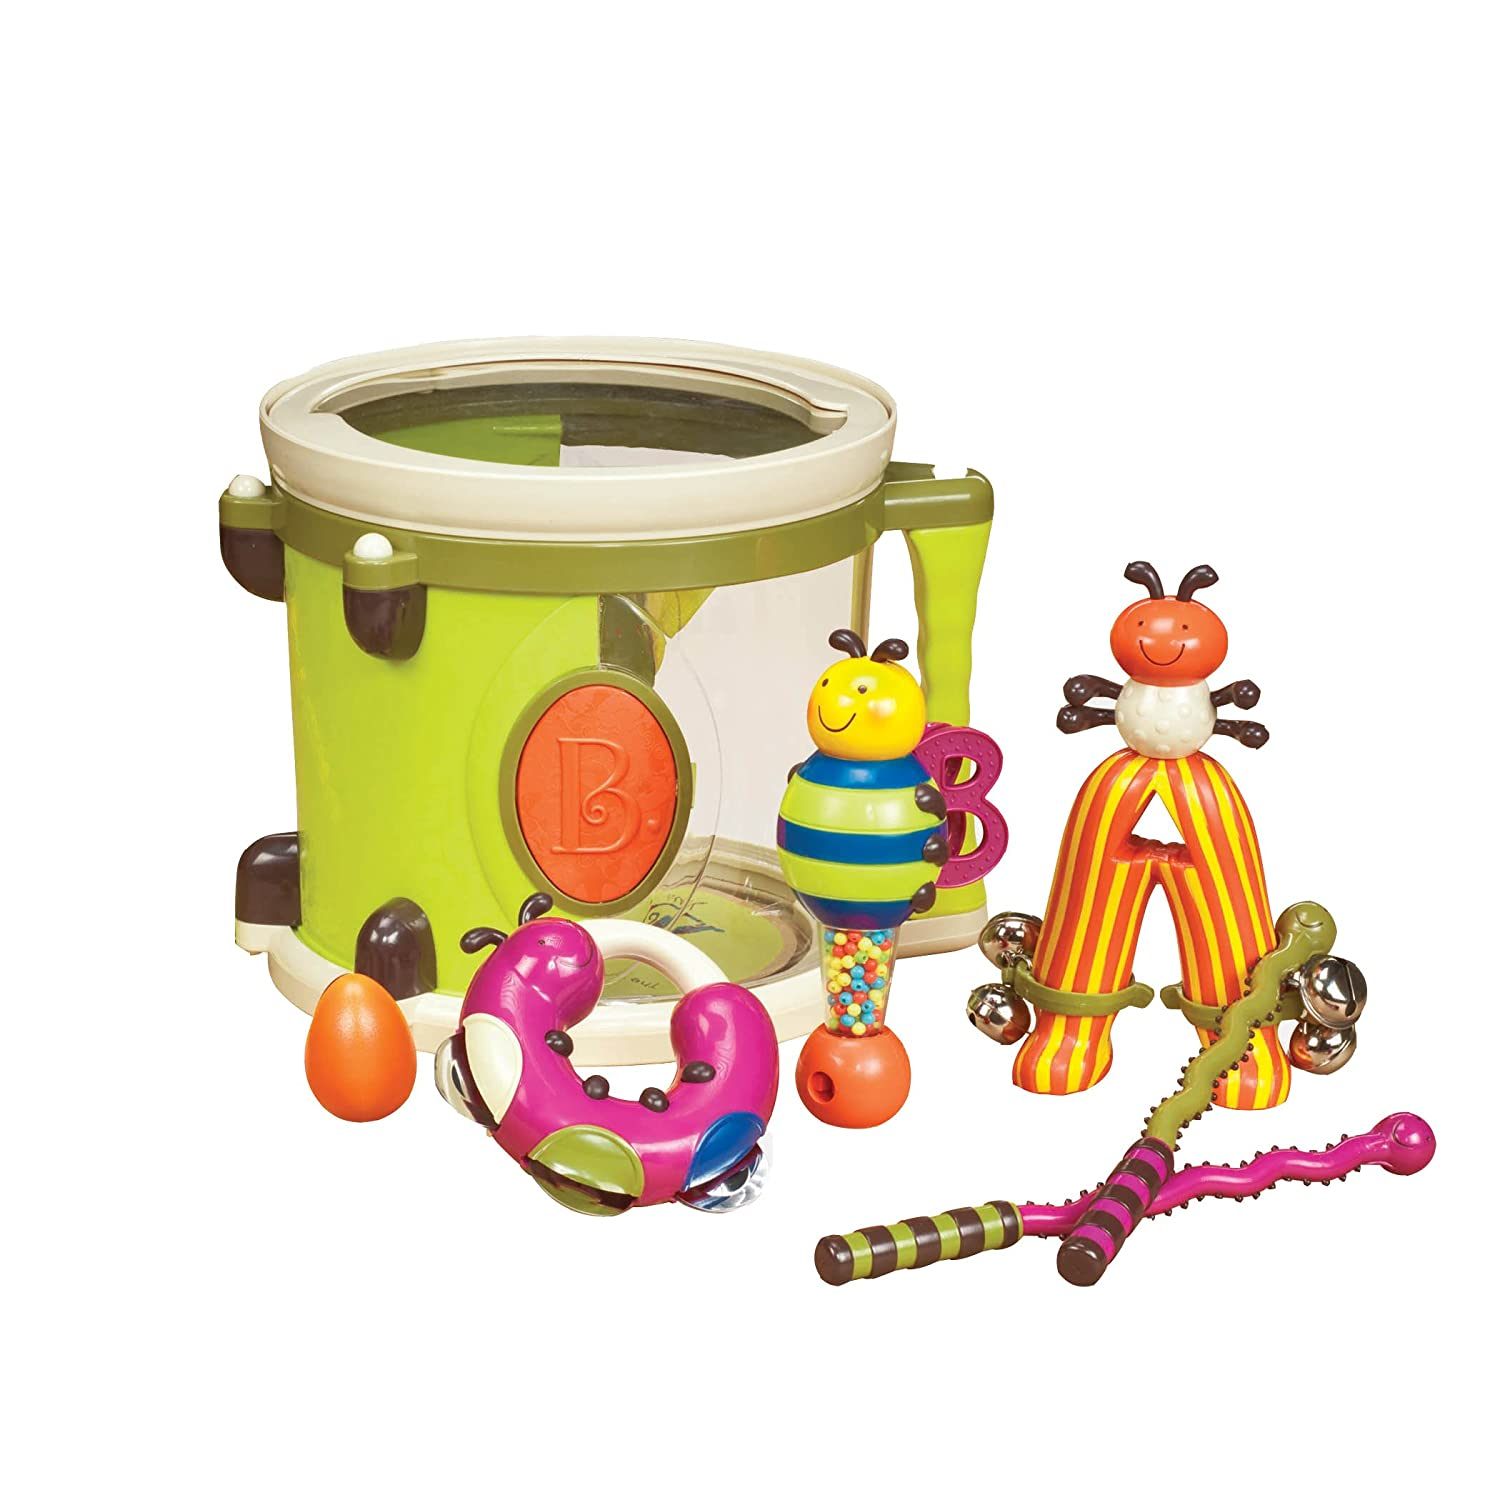 B Parum Pum Pum Musical Instruments Amazon Toys & Games